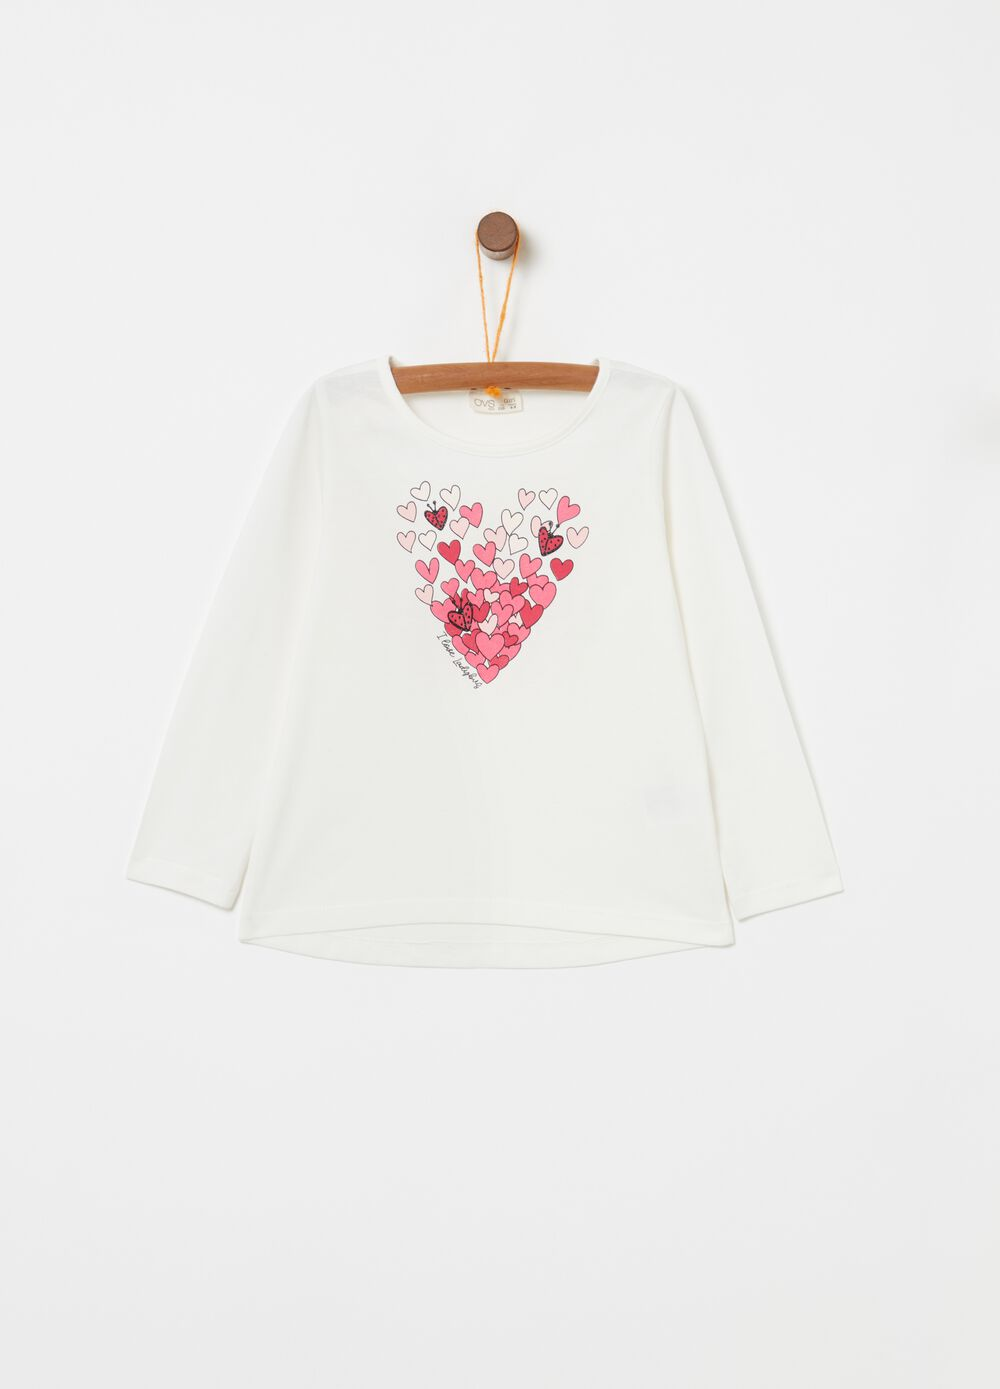 100% cotton T-shirt with heart print